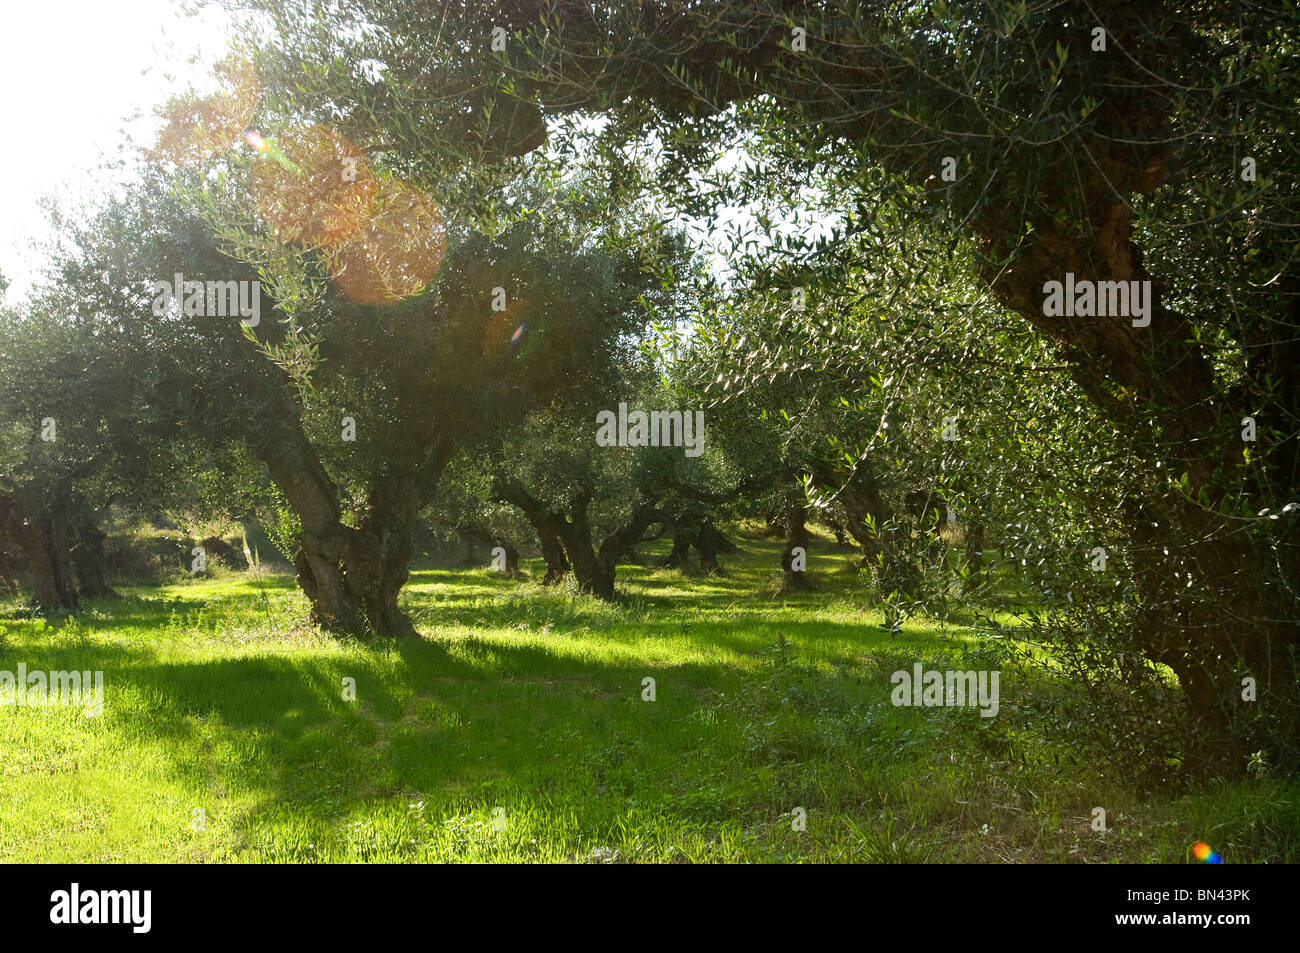 Olive Trees in olive grove, Zakynthos, Ionian islands, Greece - Stock Image